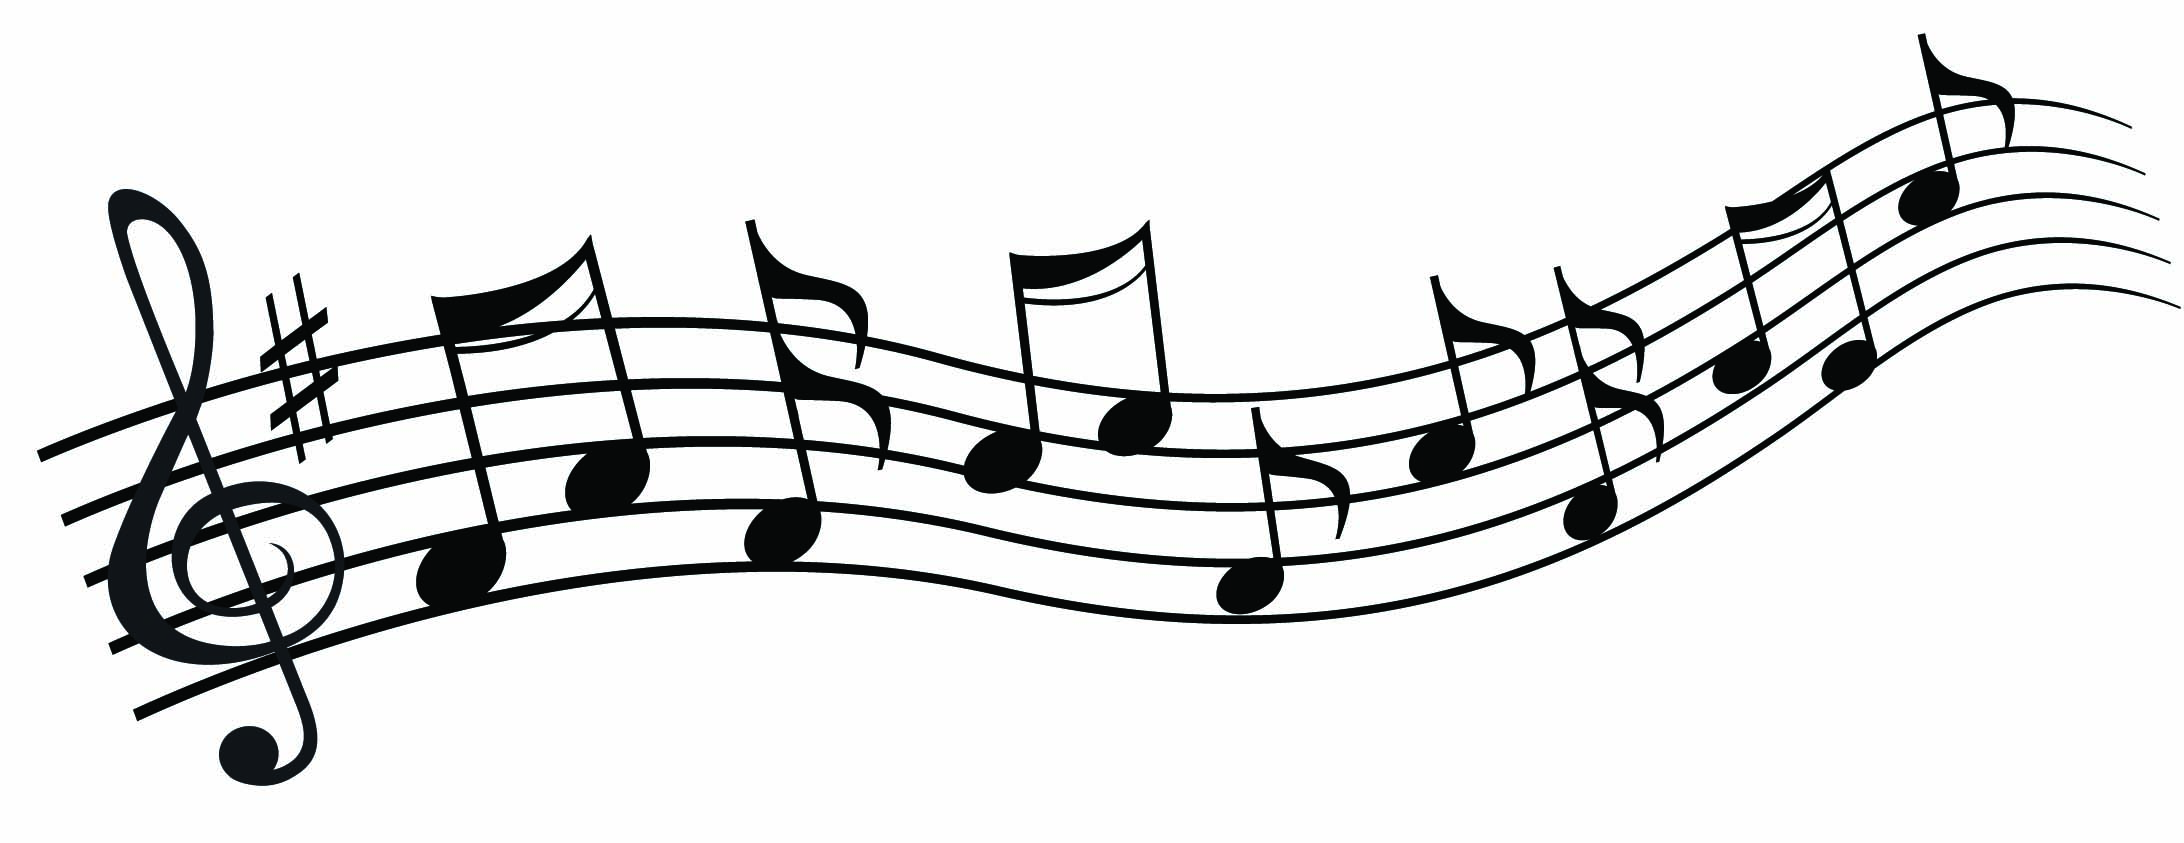 2184x843 Music Notes Musical Clip Art Free Music Note Clipart Image 1 9